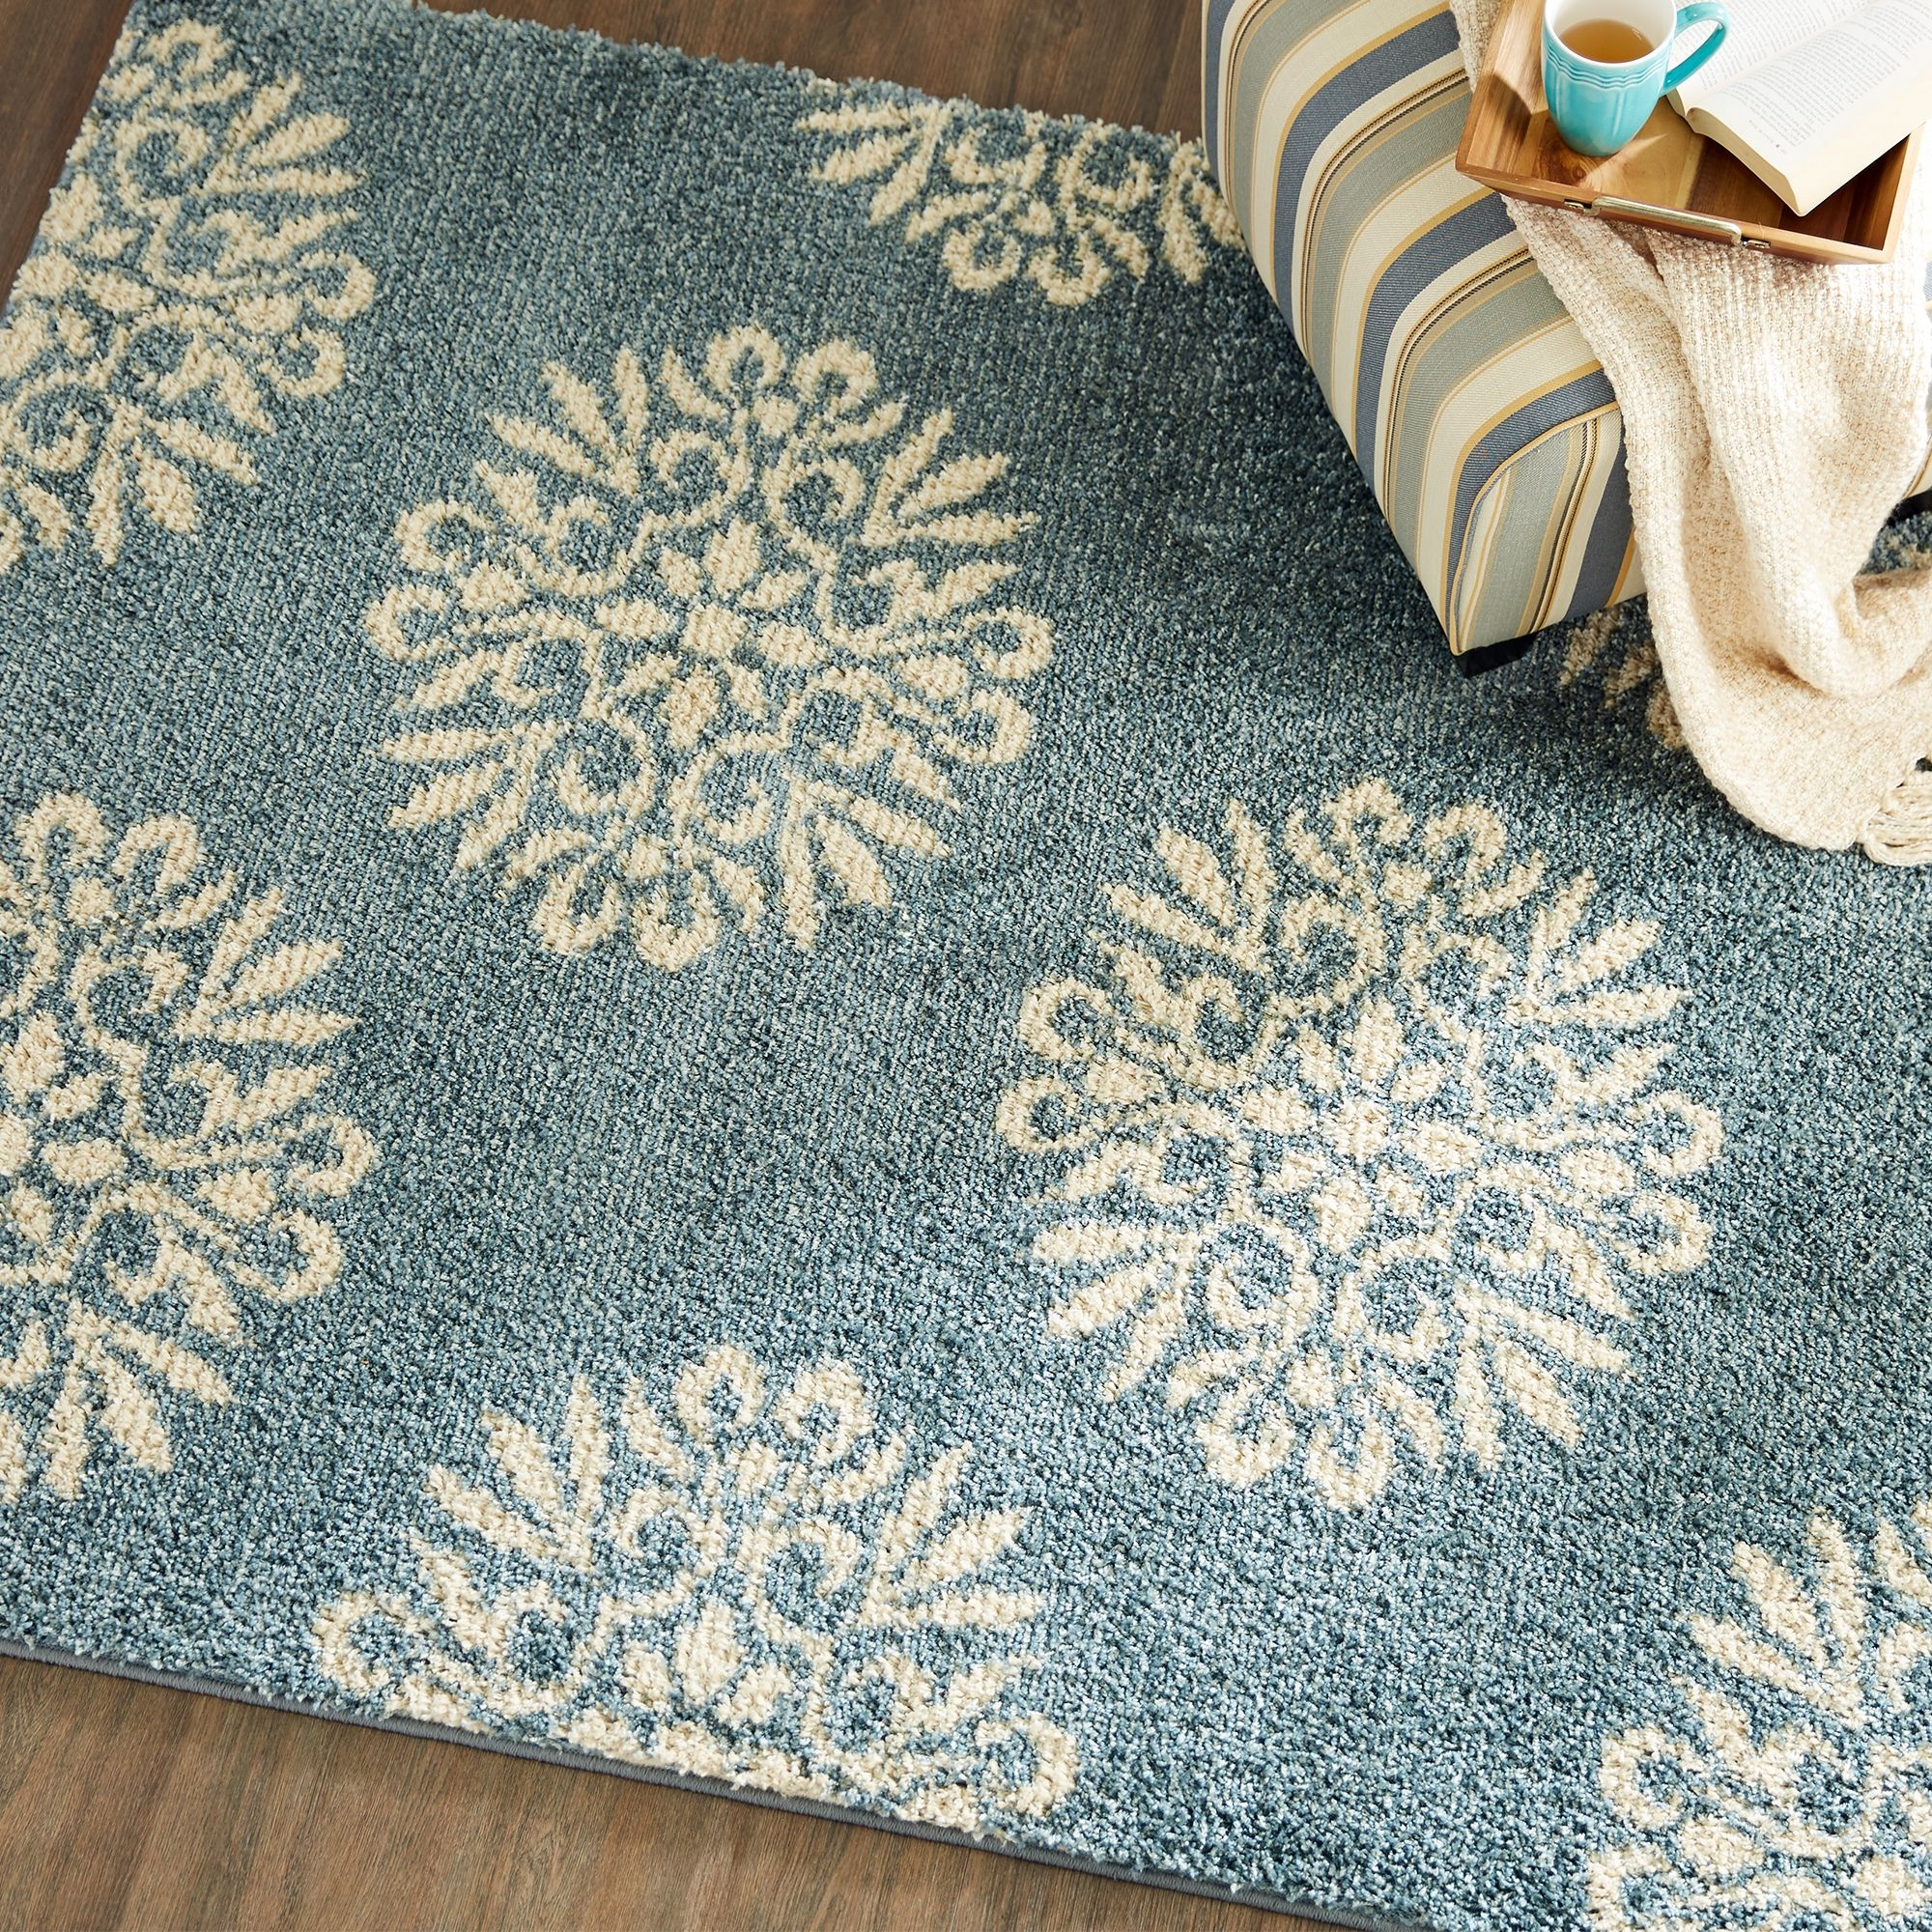 Mohawk Exploded Medallions Bay Blue 5 X 7 Area Rug Ashley Furniture Homestore In 2021 Area Rugs Rugs Comforters Cozy 5 by 7 area rugs